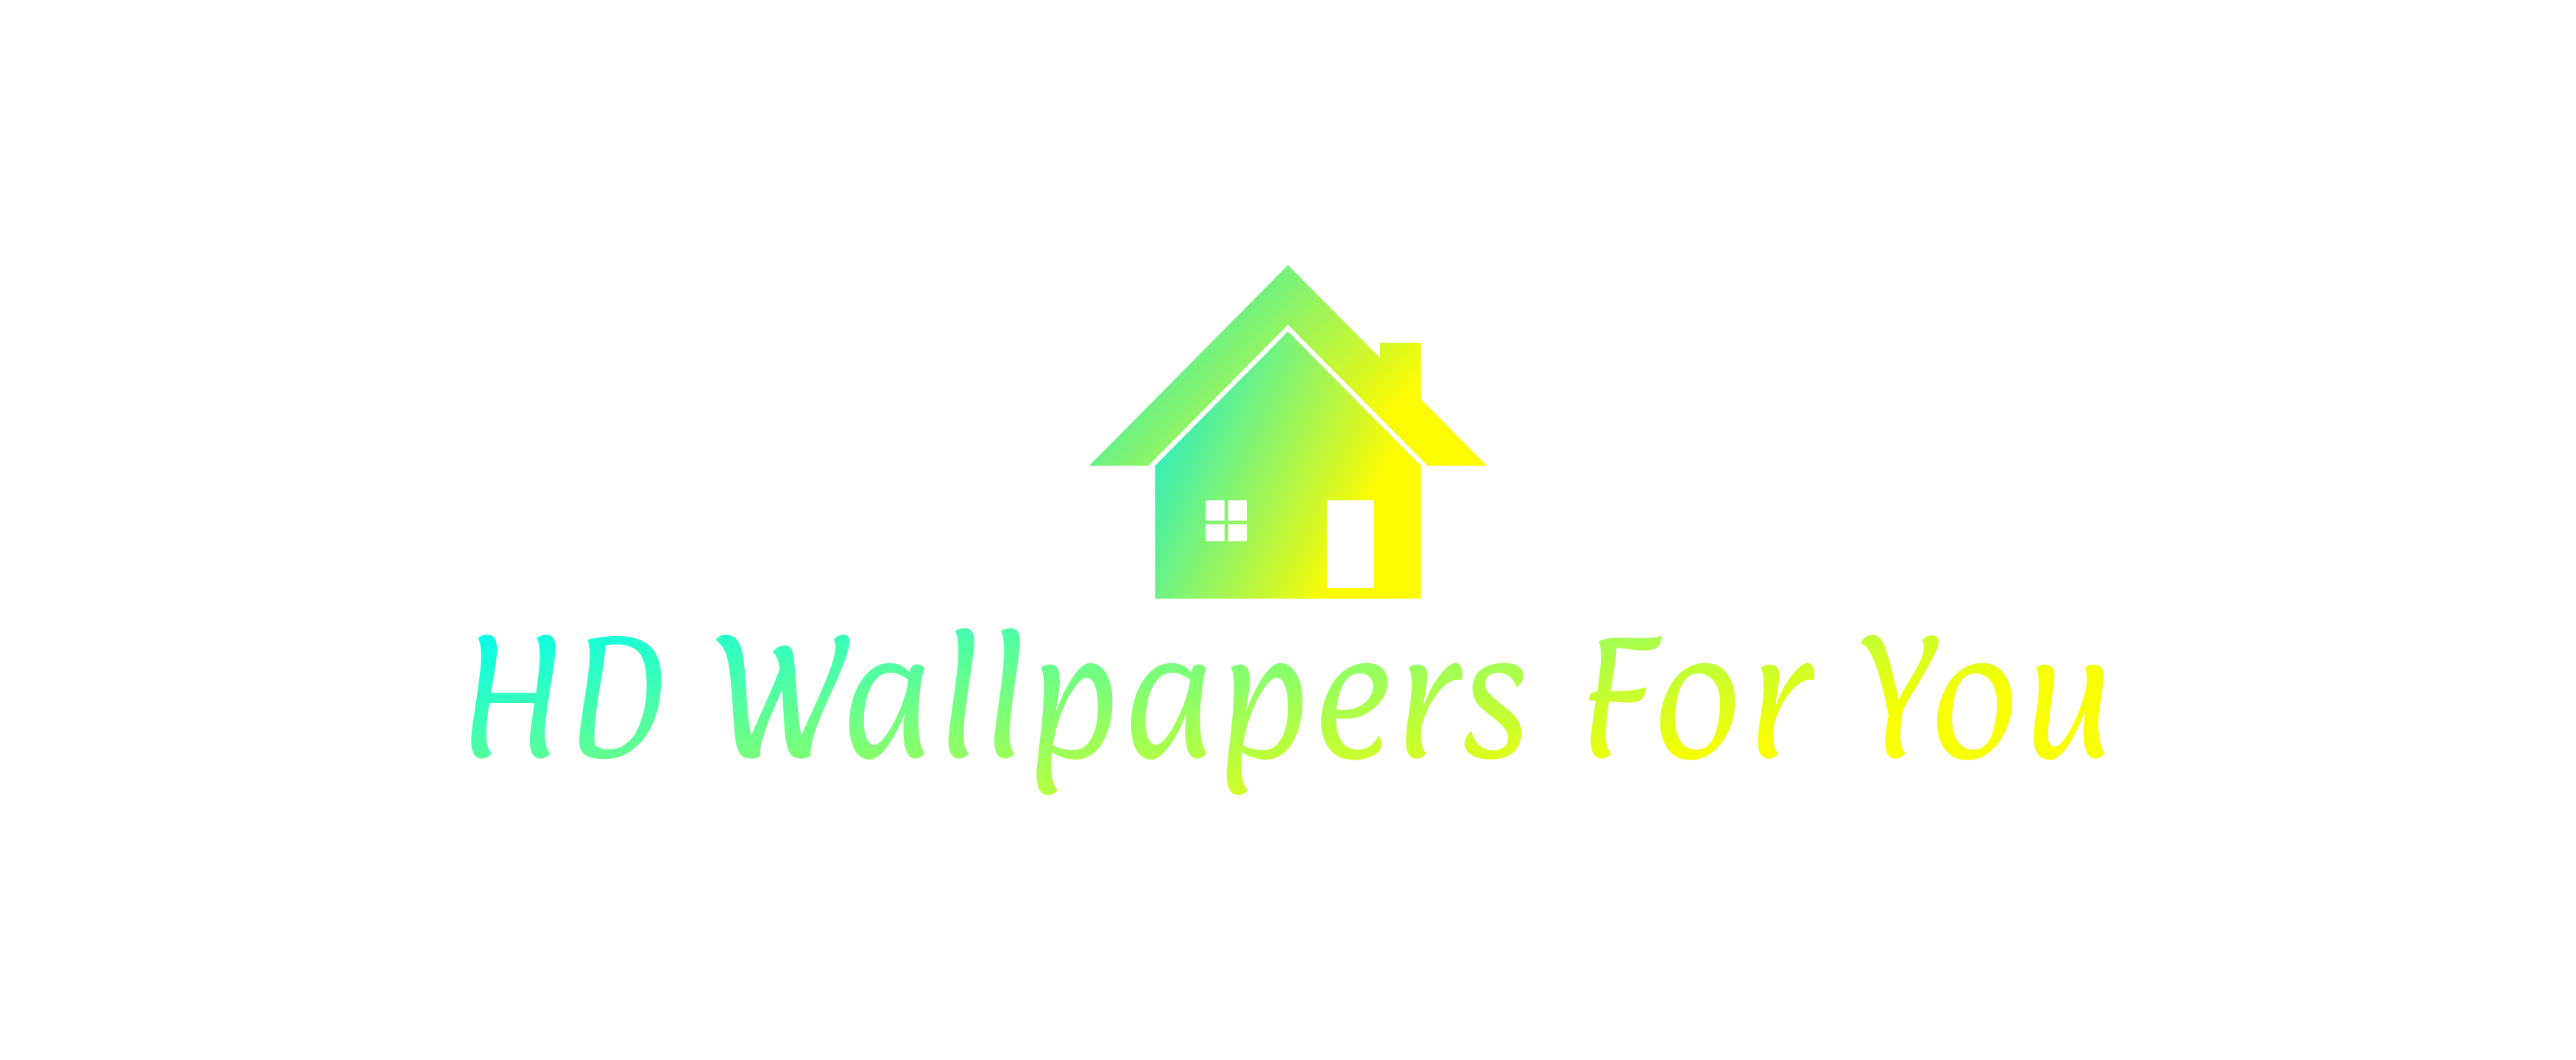 HD Wallpapers For You